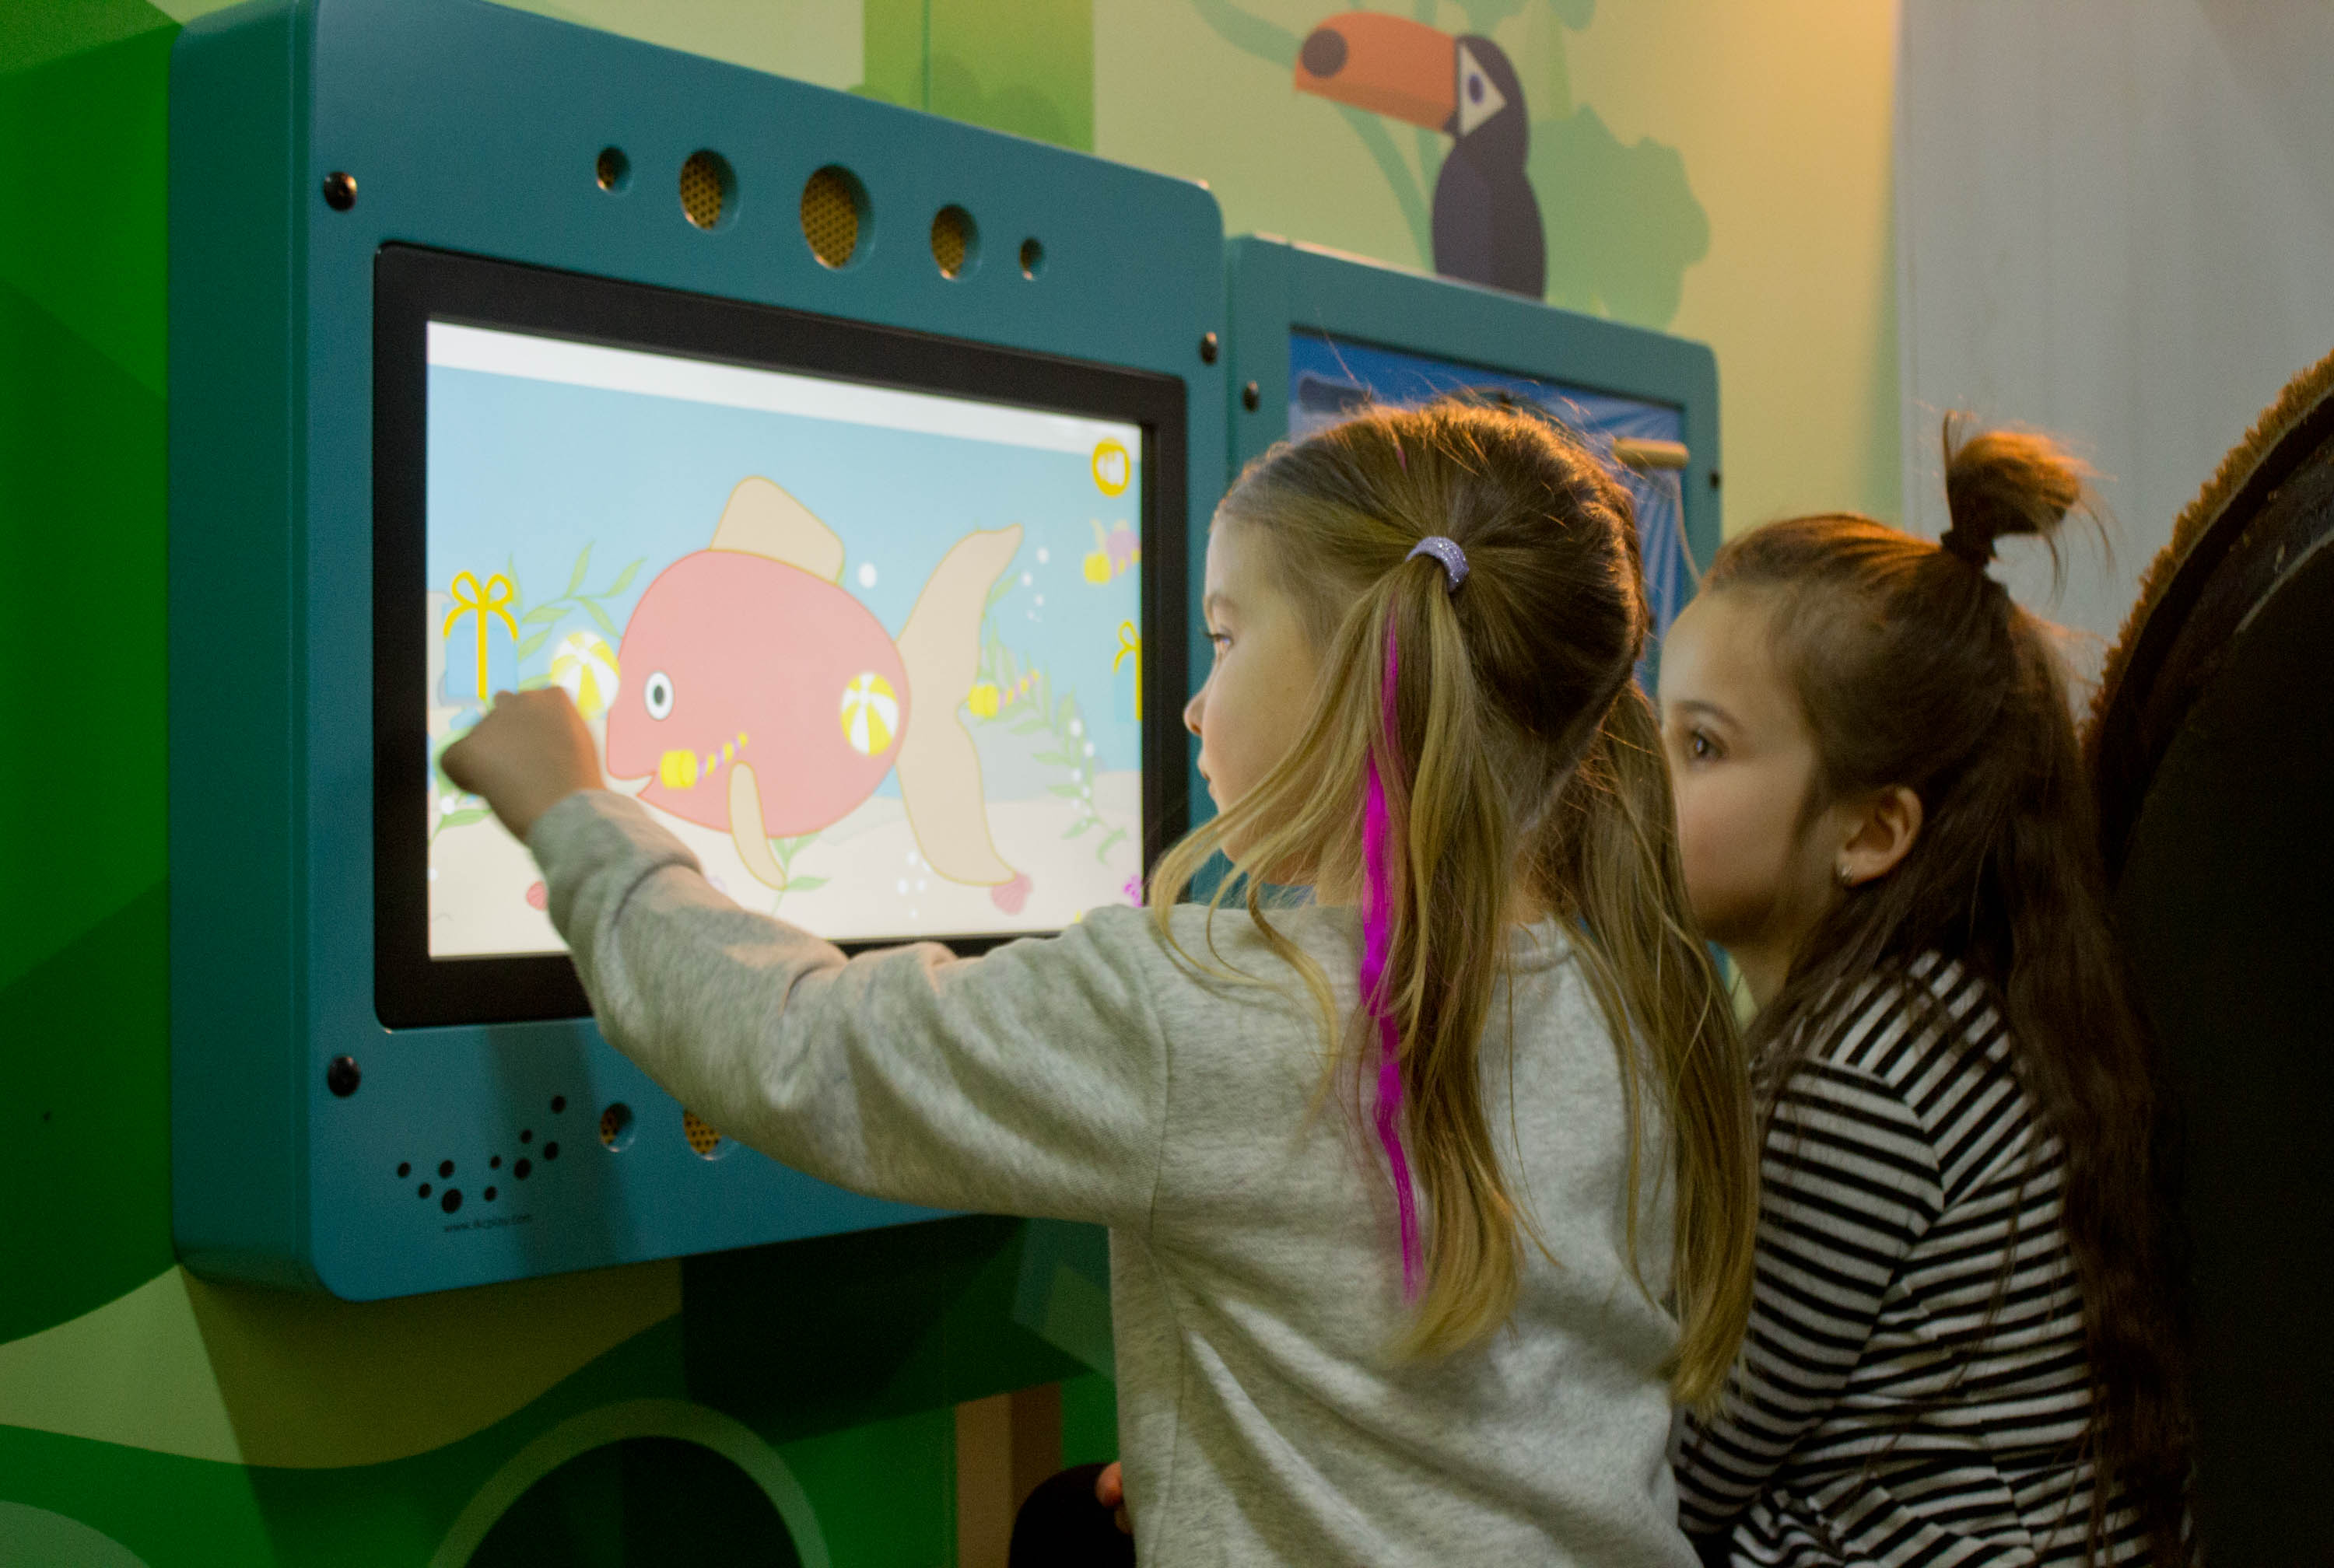 this image shows 2 kids with an interactive play system